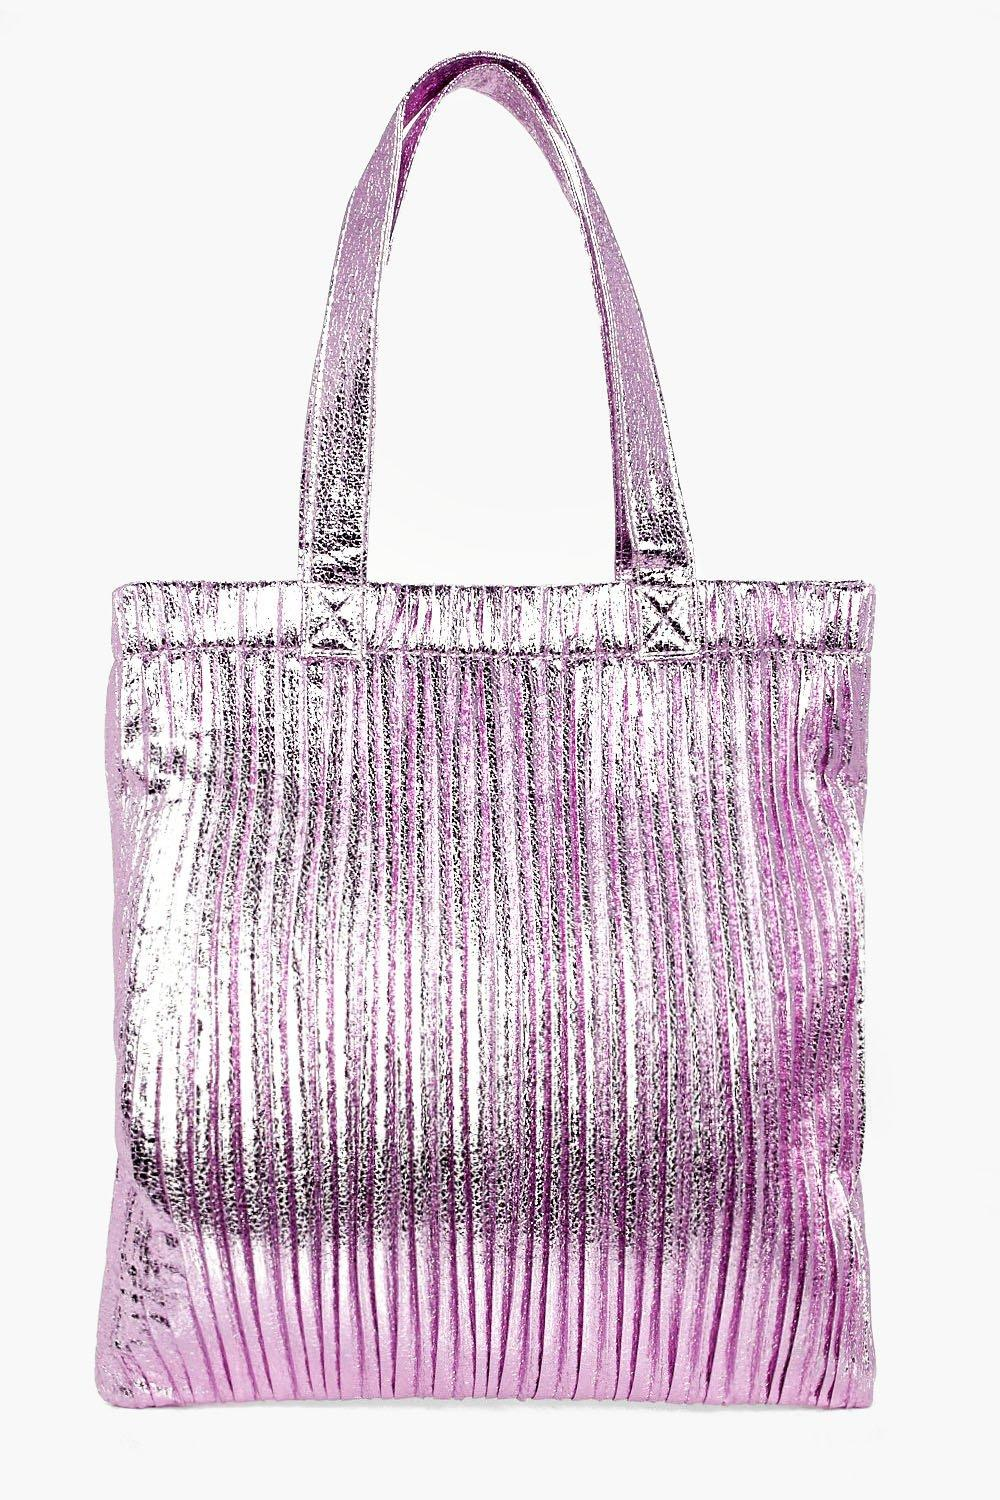 Plisse Effect Metallic Shopper Bag - lilac - Aleen